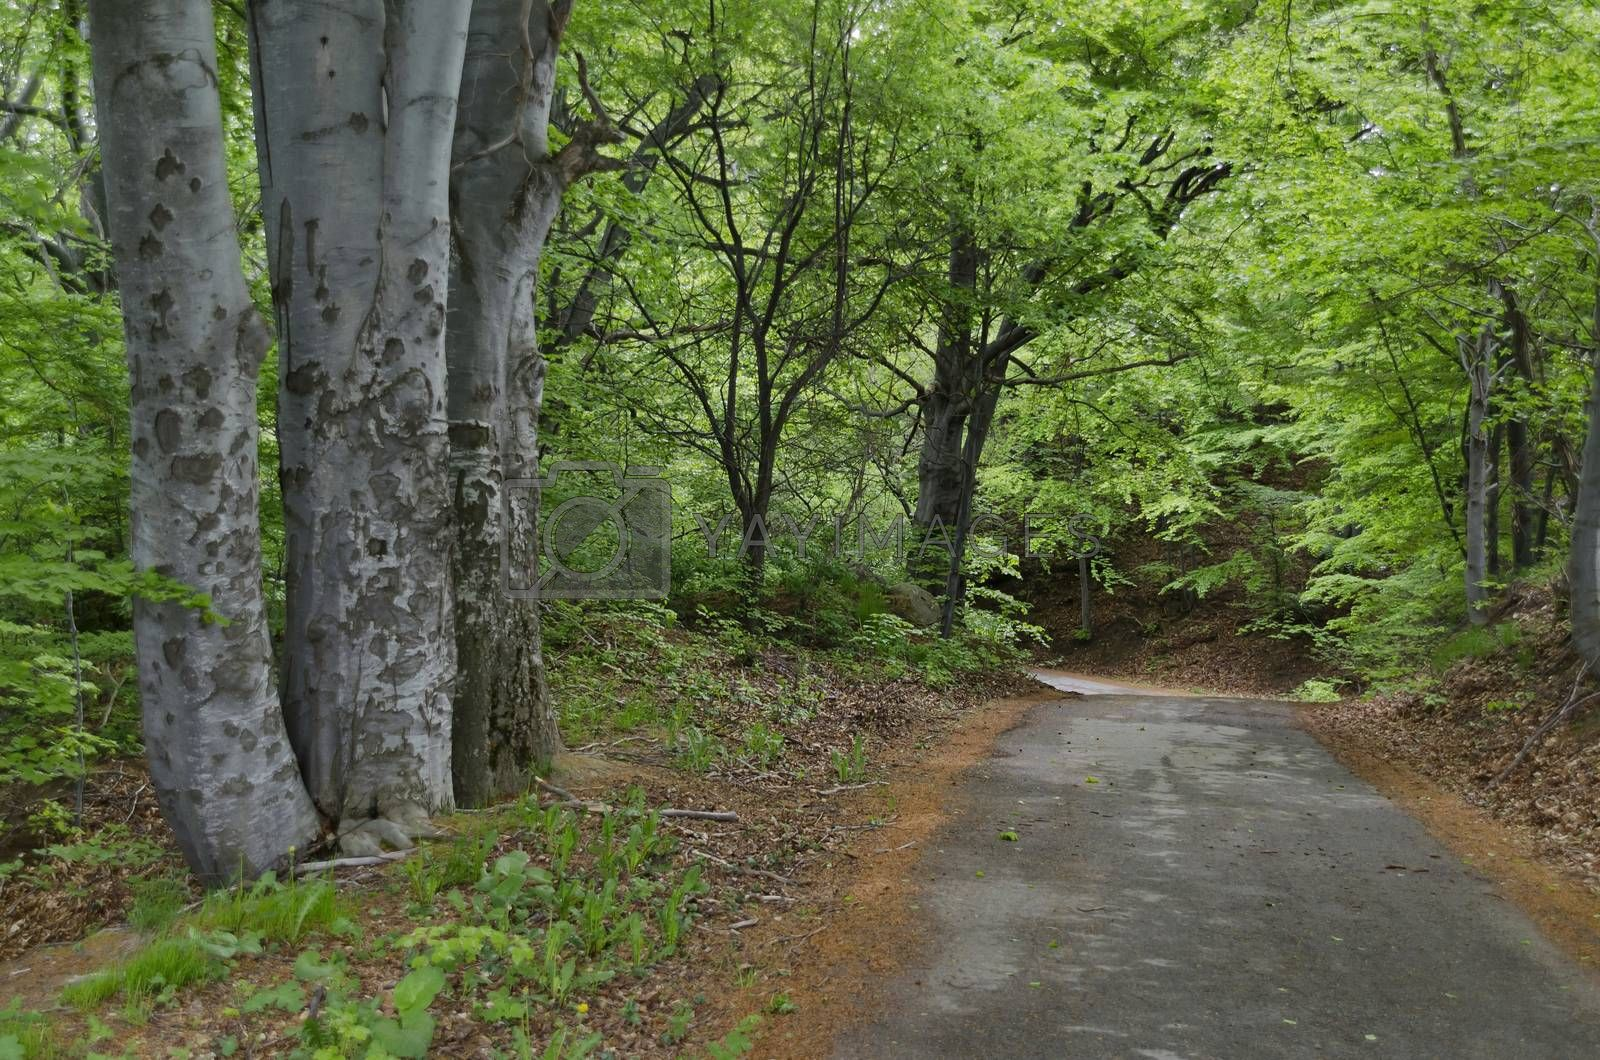 Panorama of picturesque forest and road